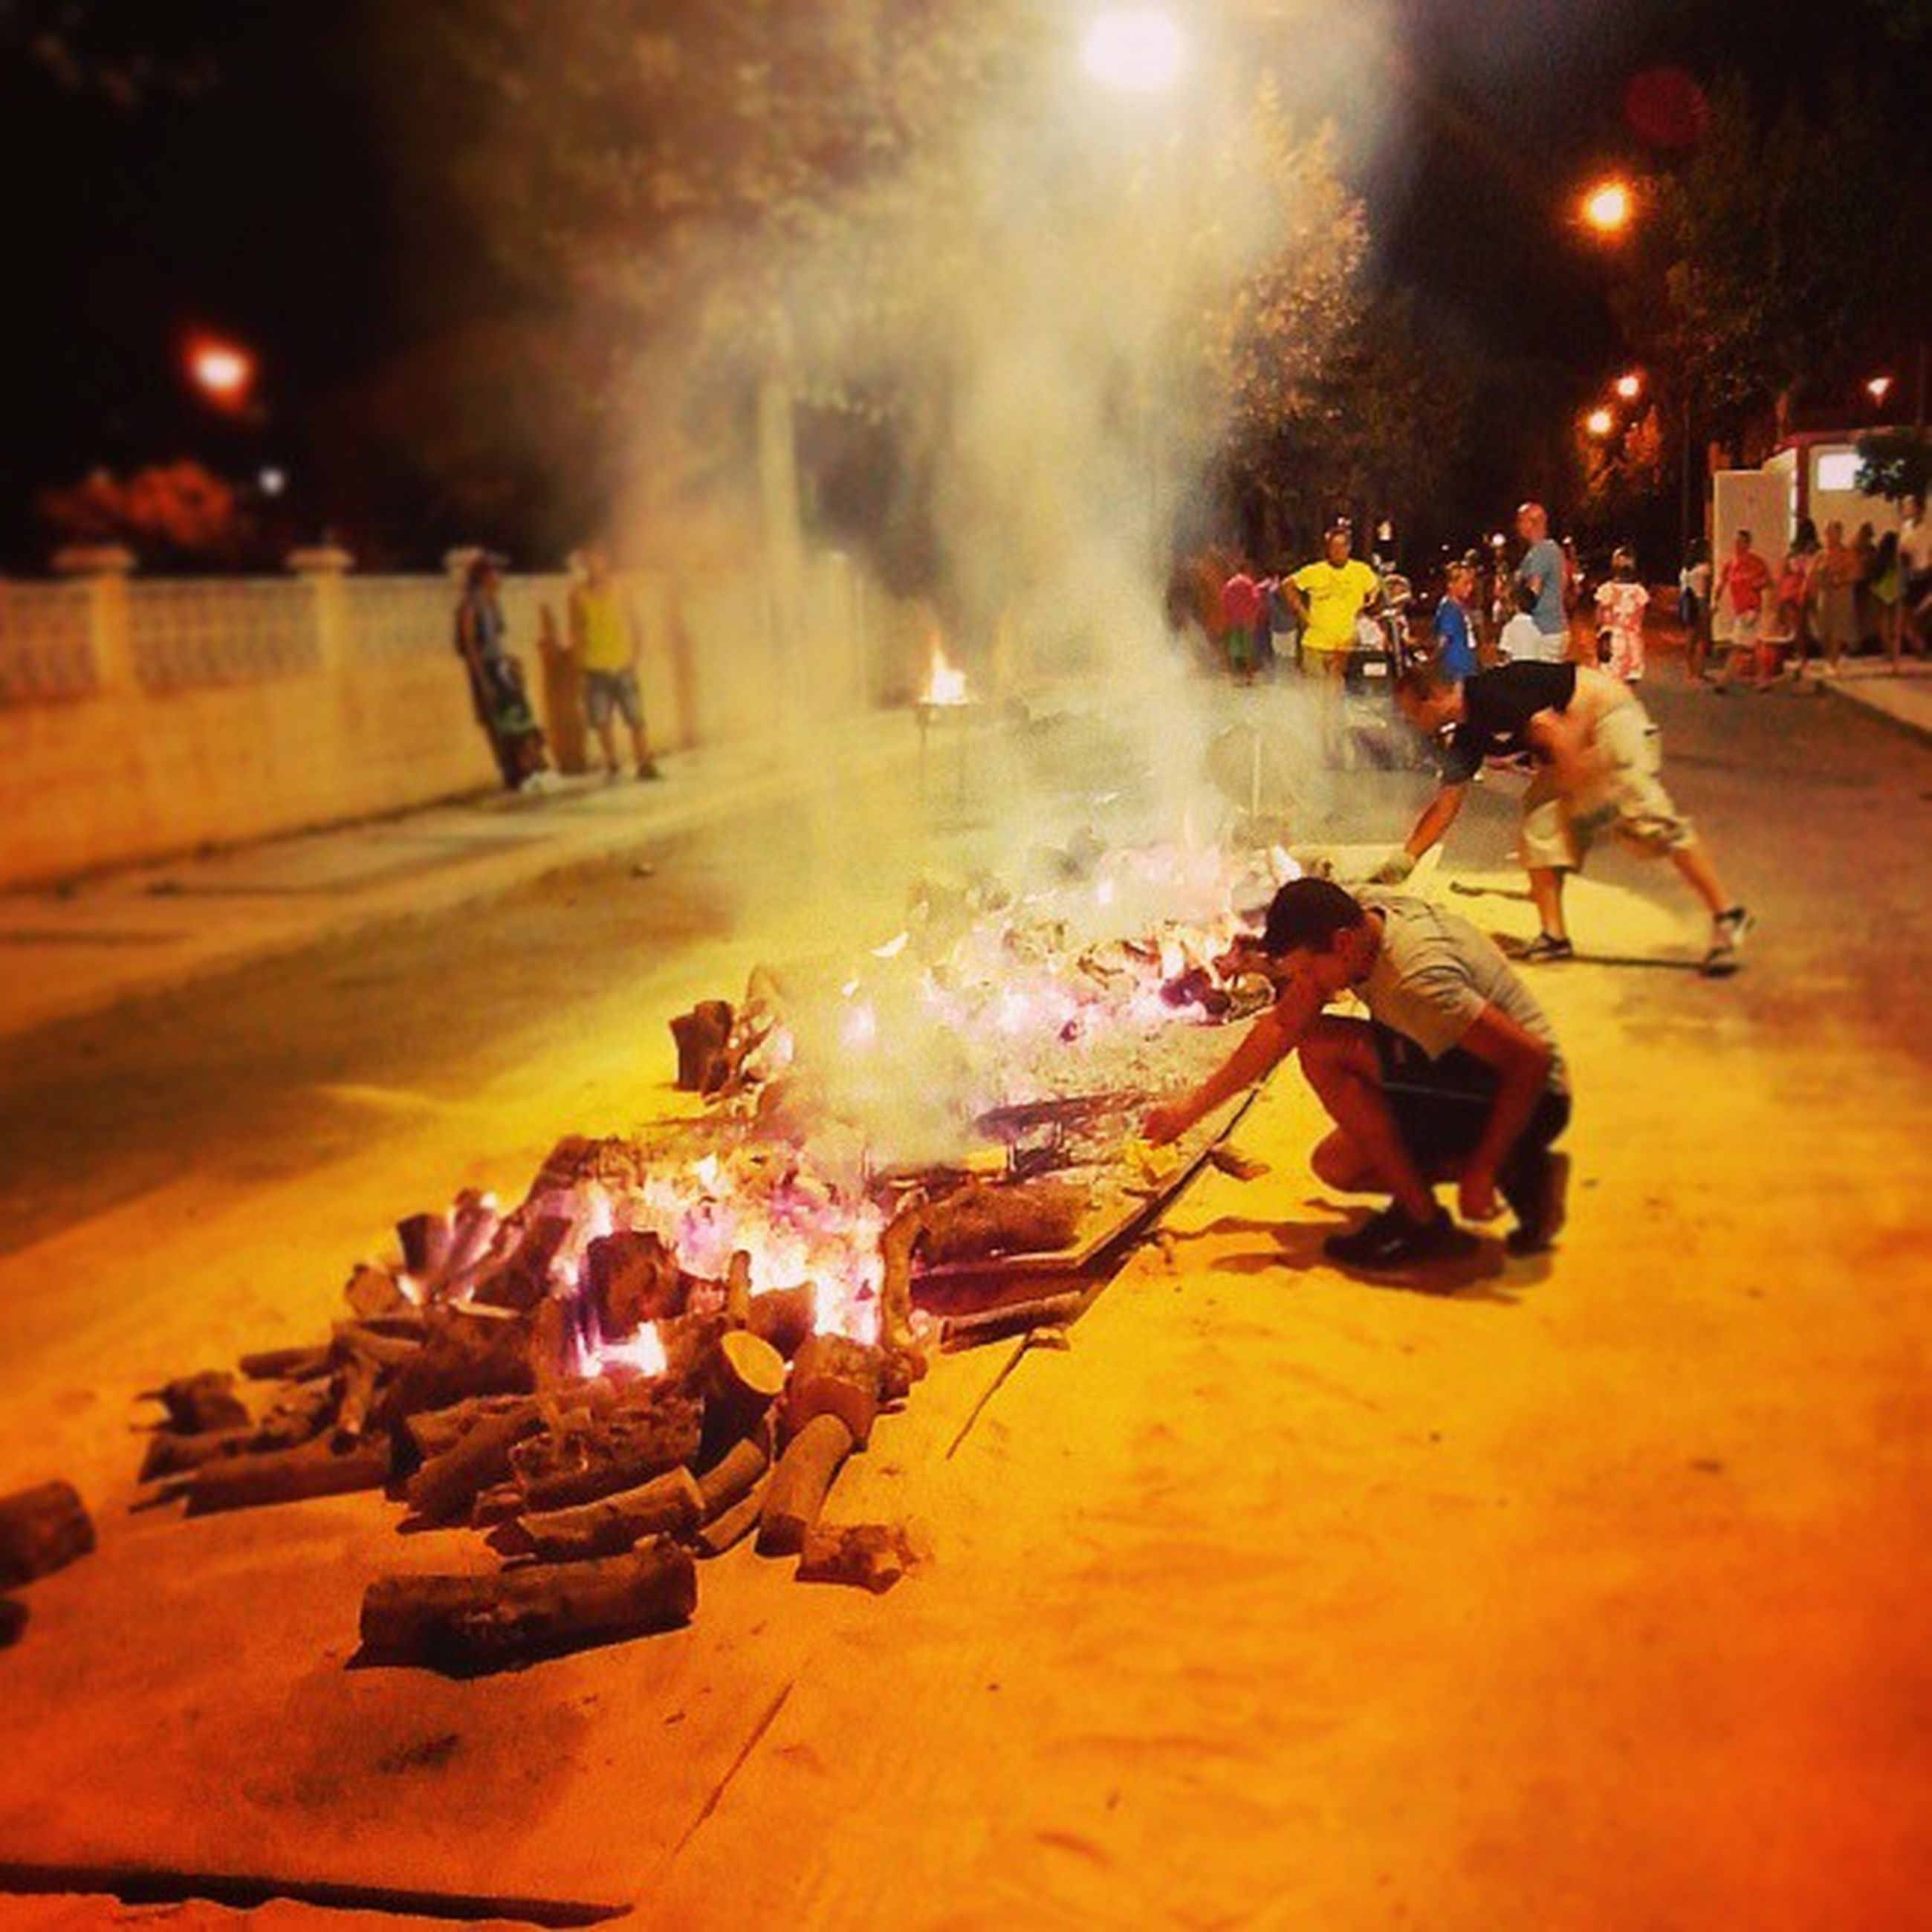 night, illuminated, street, burning, lighting equipment, incidental people, street light, large group of people, flame, outdoors, fire - natural phenomenon, light - natural phenomenon, men, transportation, glowing, motion, building exterior, city, smoke - physical structure